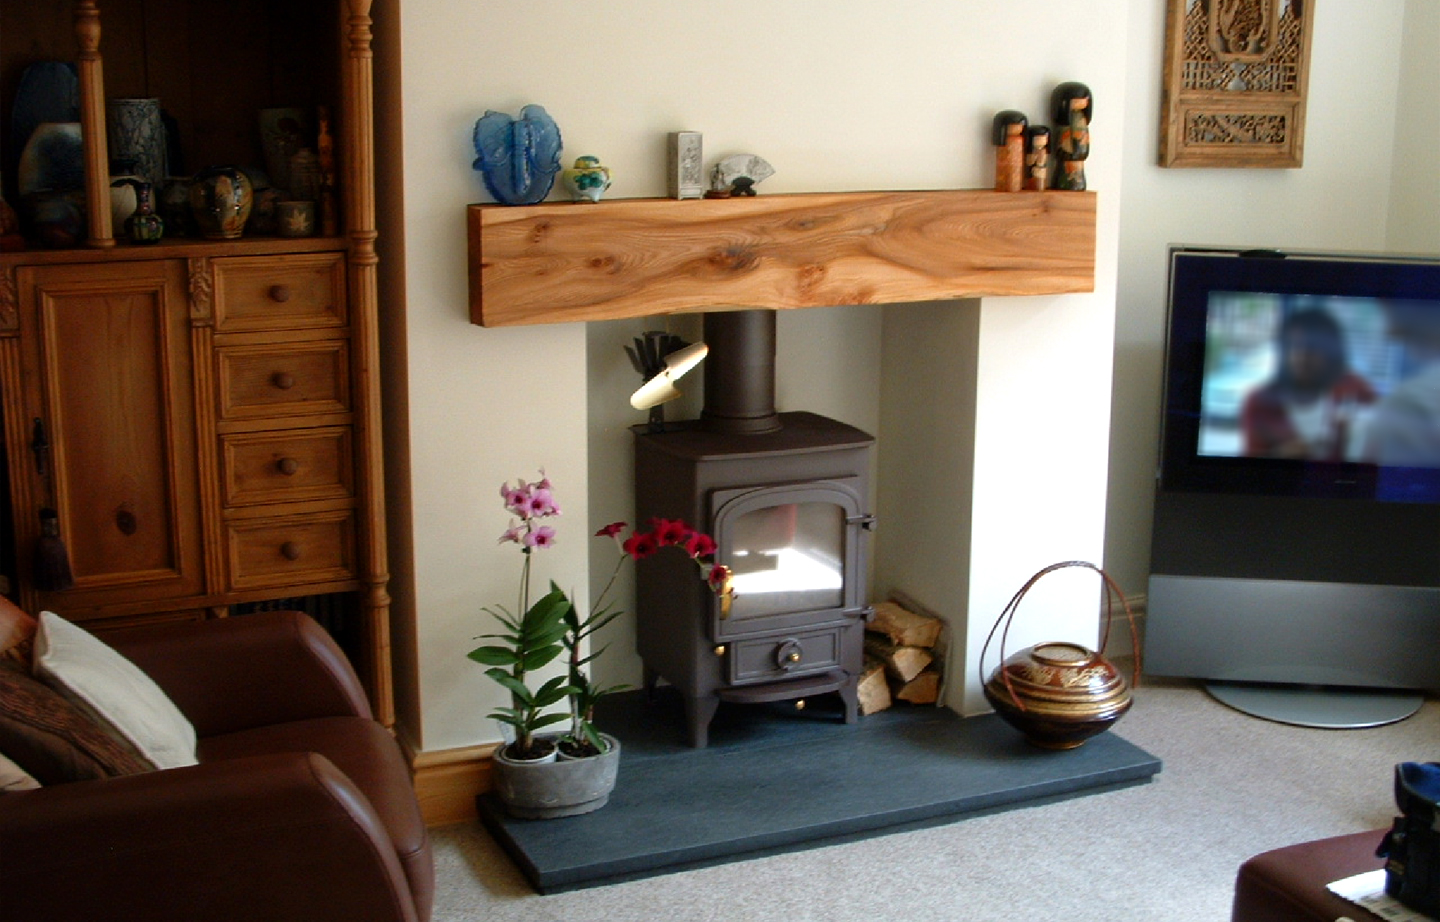 Elm mantel fireplace rustic wooden sleeper lintel thomson timber scotland fireplace thomson timber - Fireplace mantel piece ...